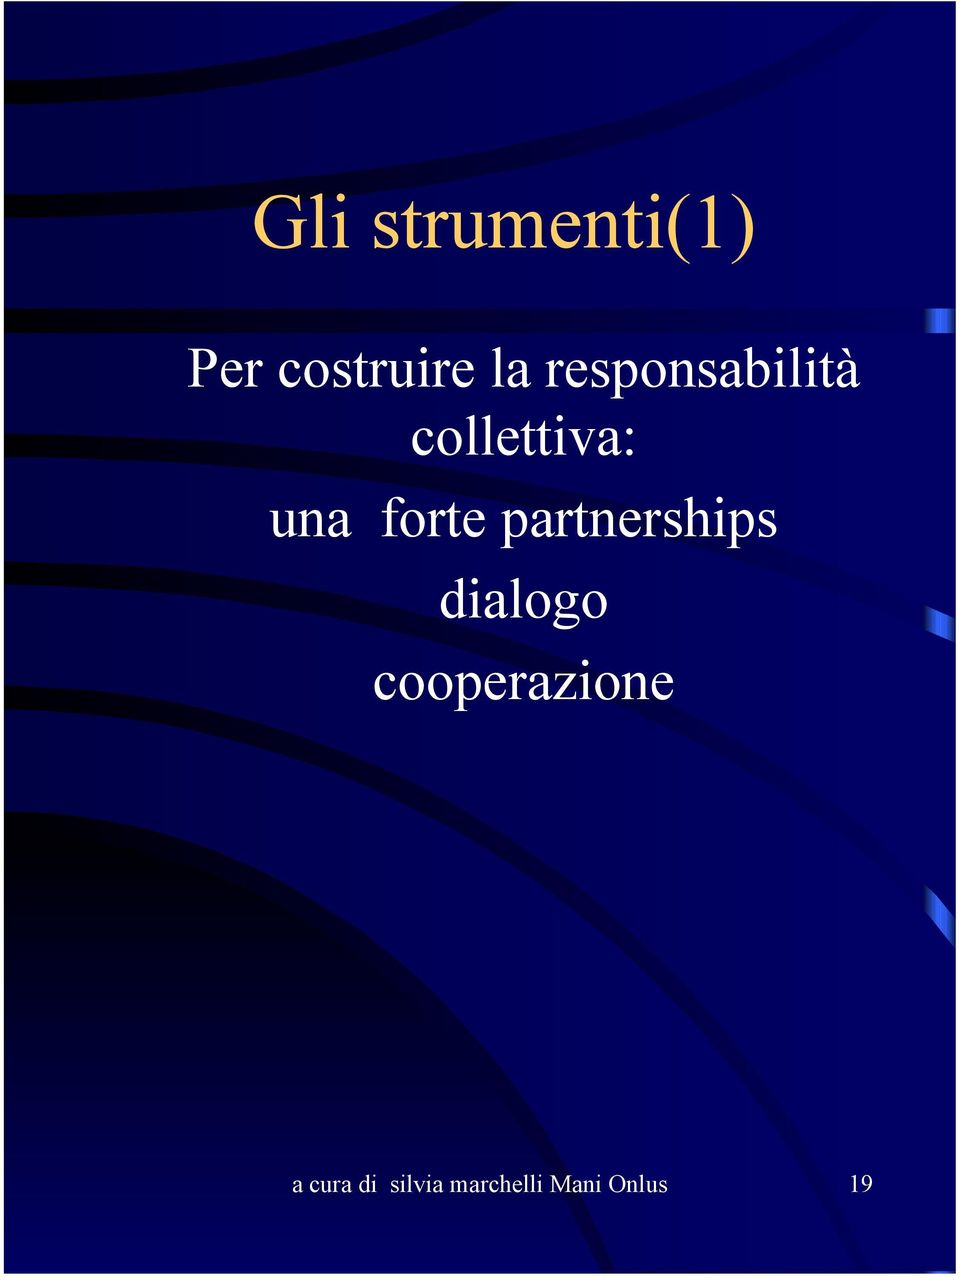 partnerships dialogo cooperazione a